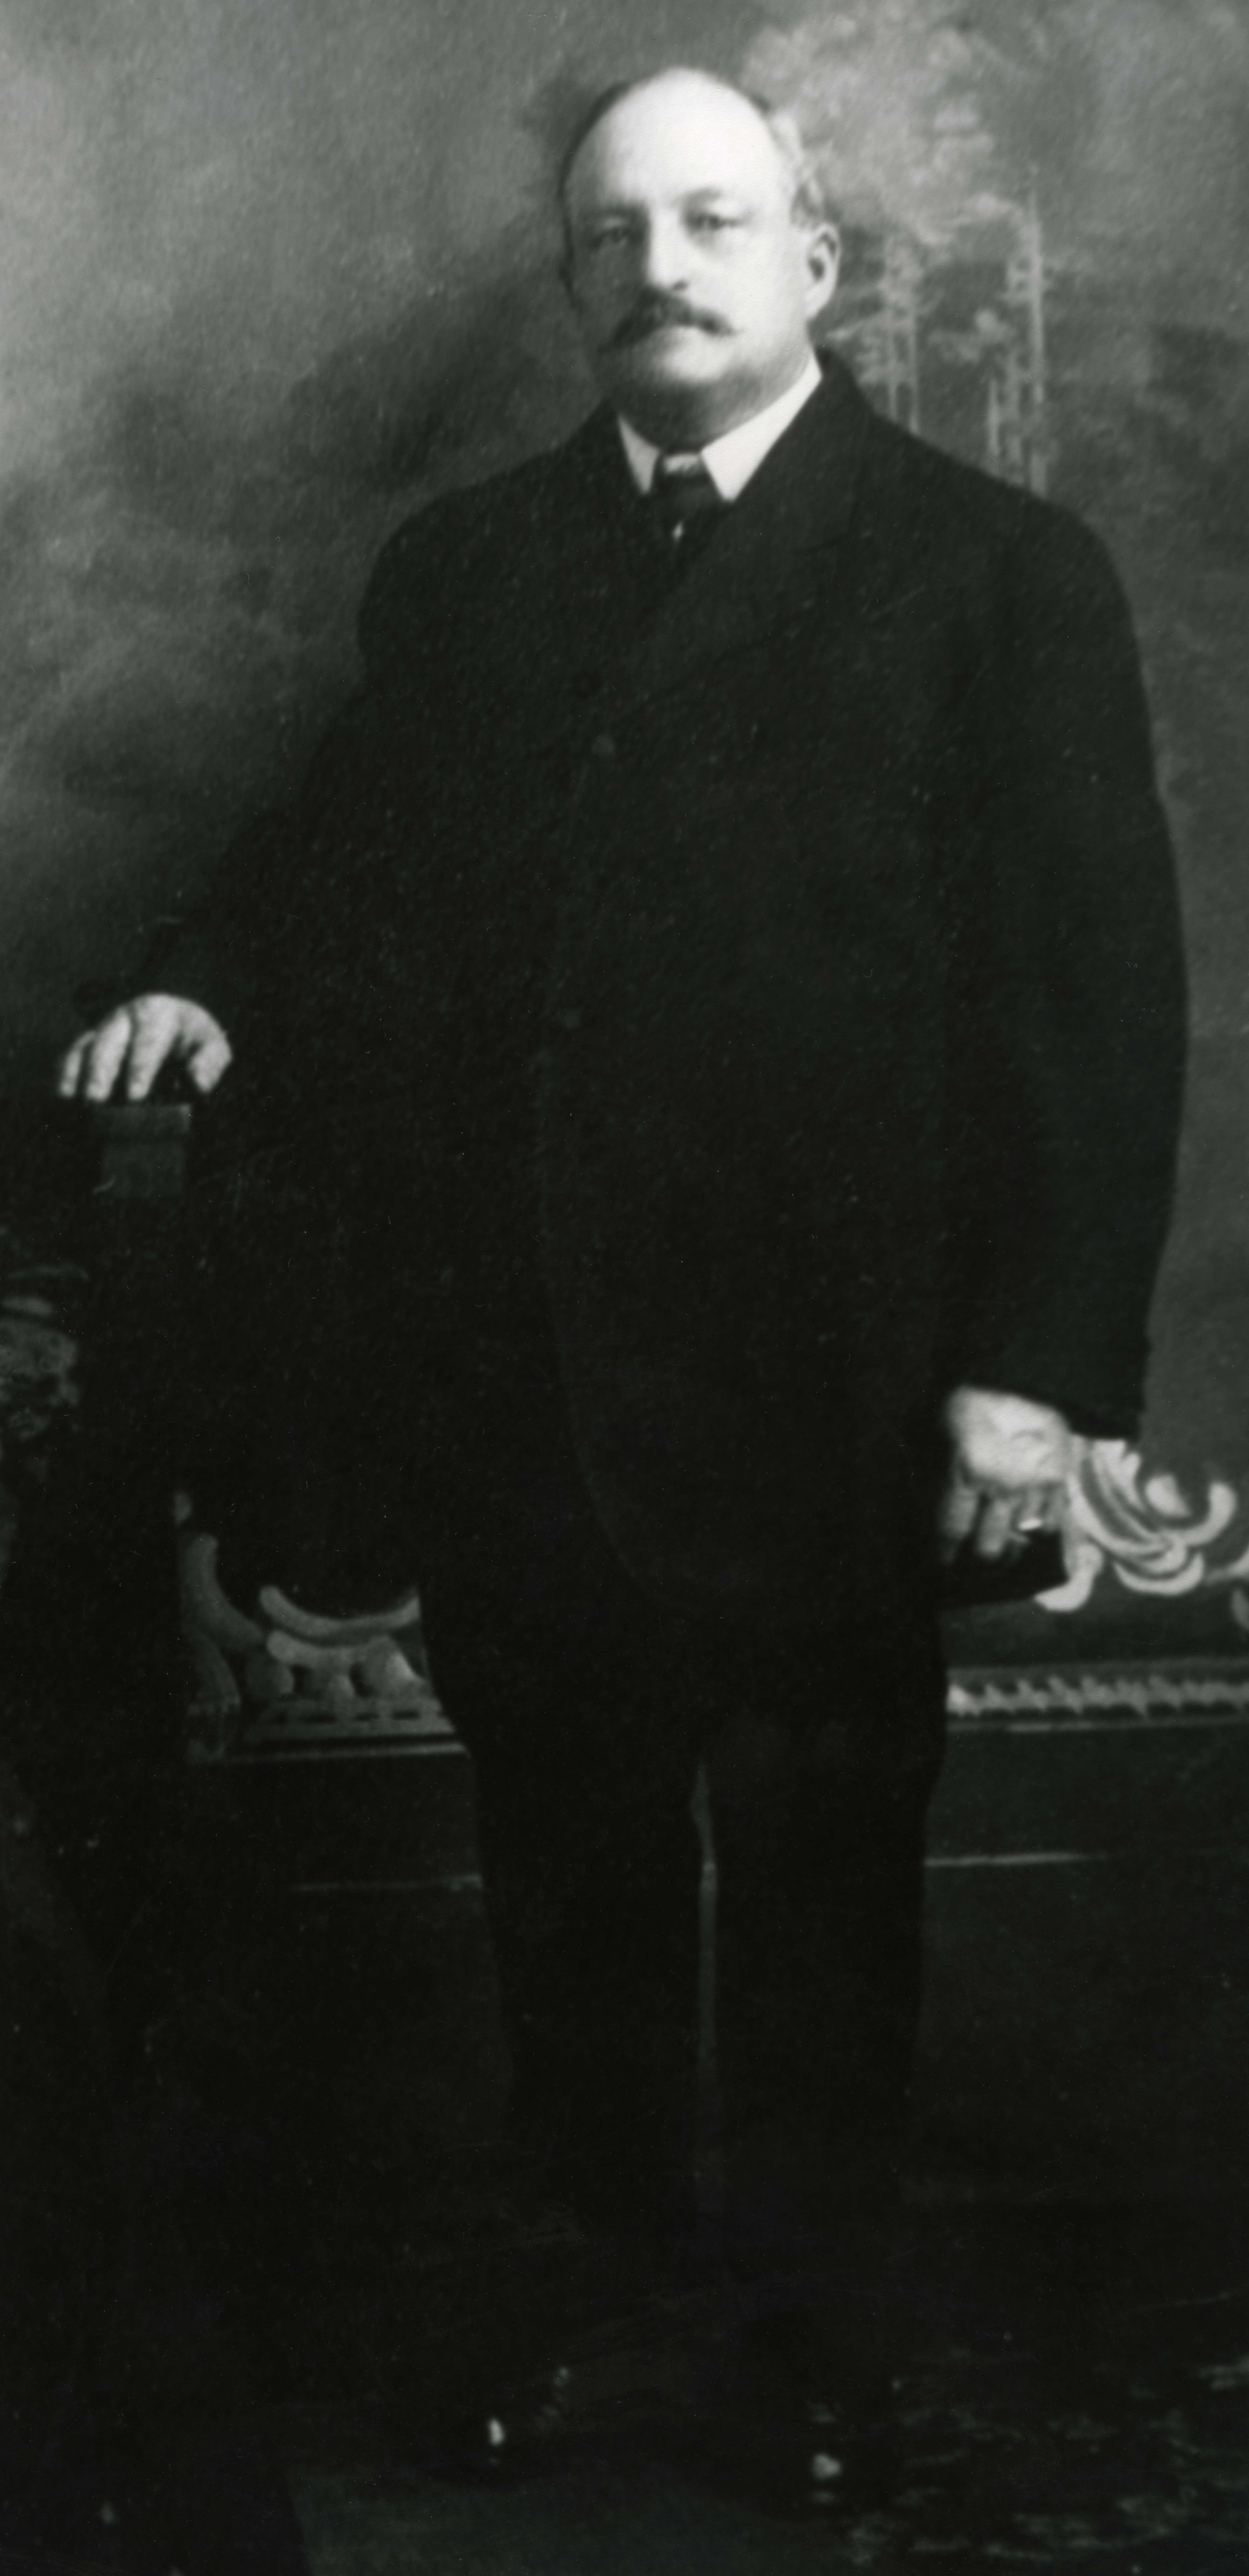 Old black and white photo of a man standing, wearing a black vest